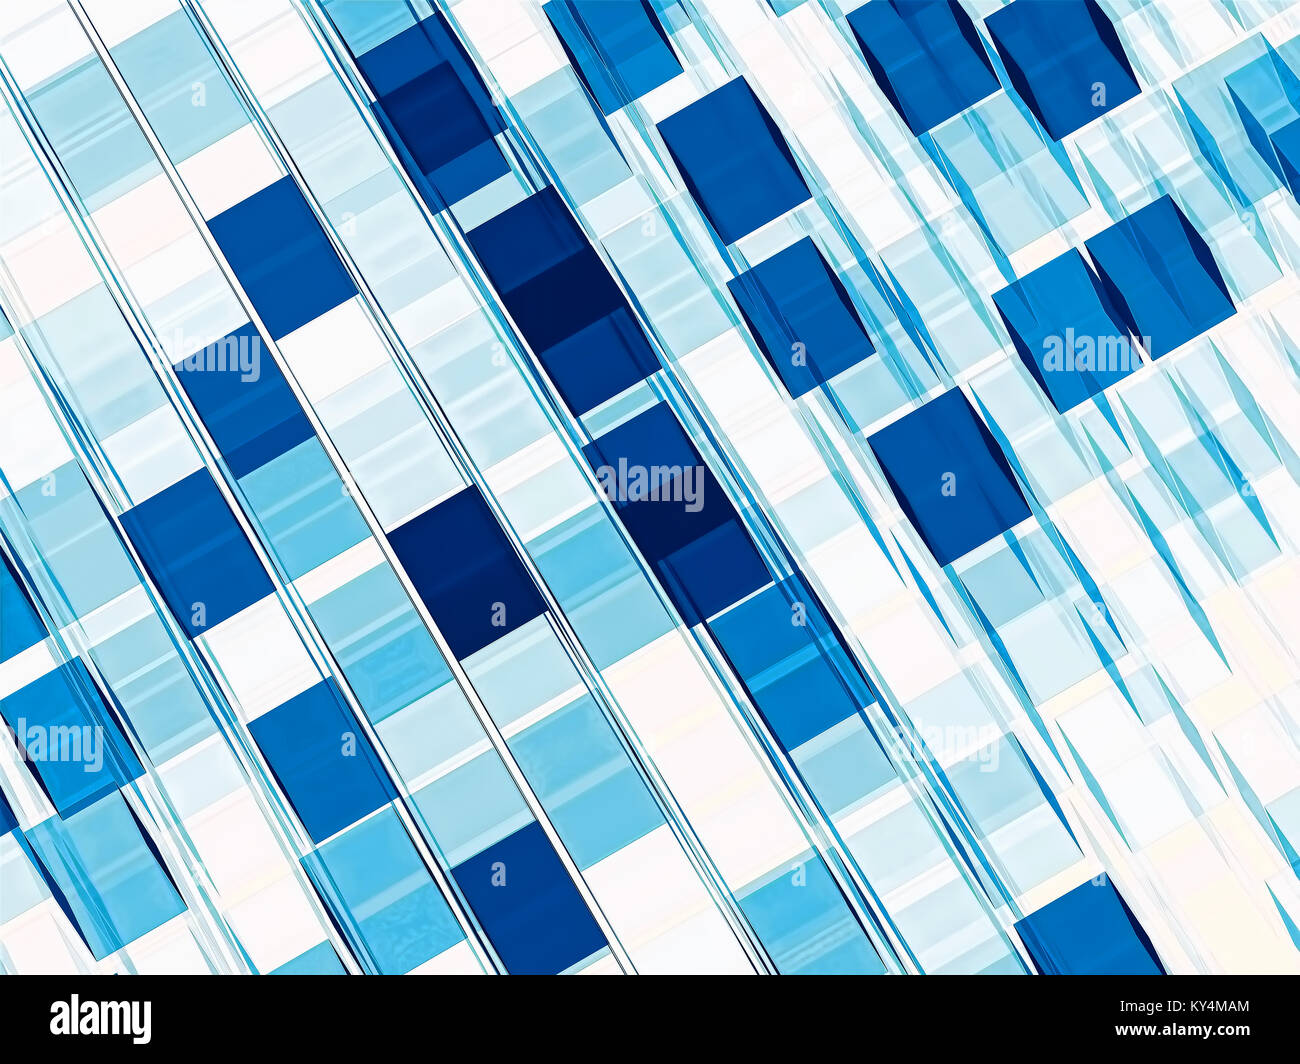 White and blue technology style backgroud. Simple abtract computer-generated checkered backdrop. Graphic design - Stock Image